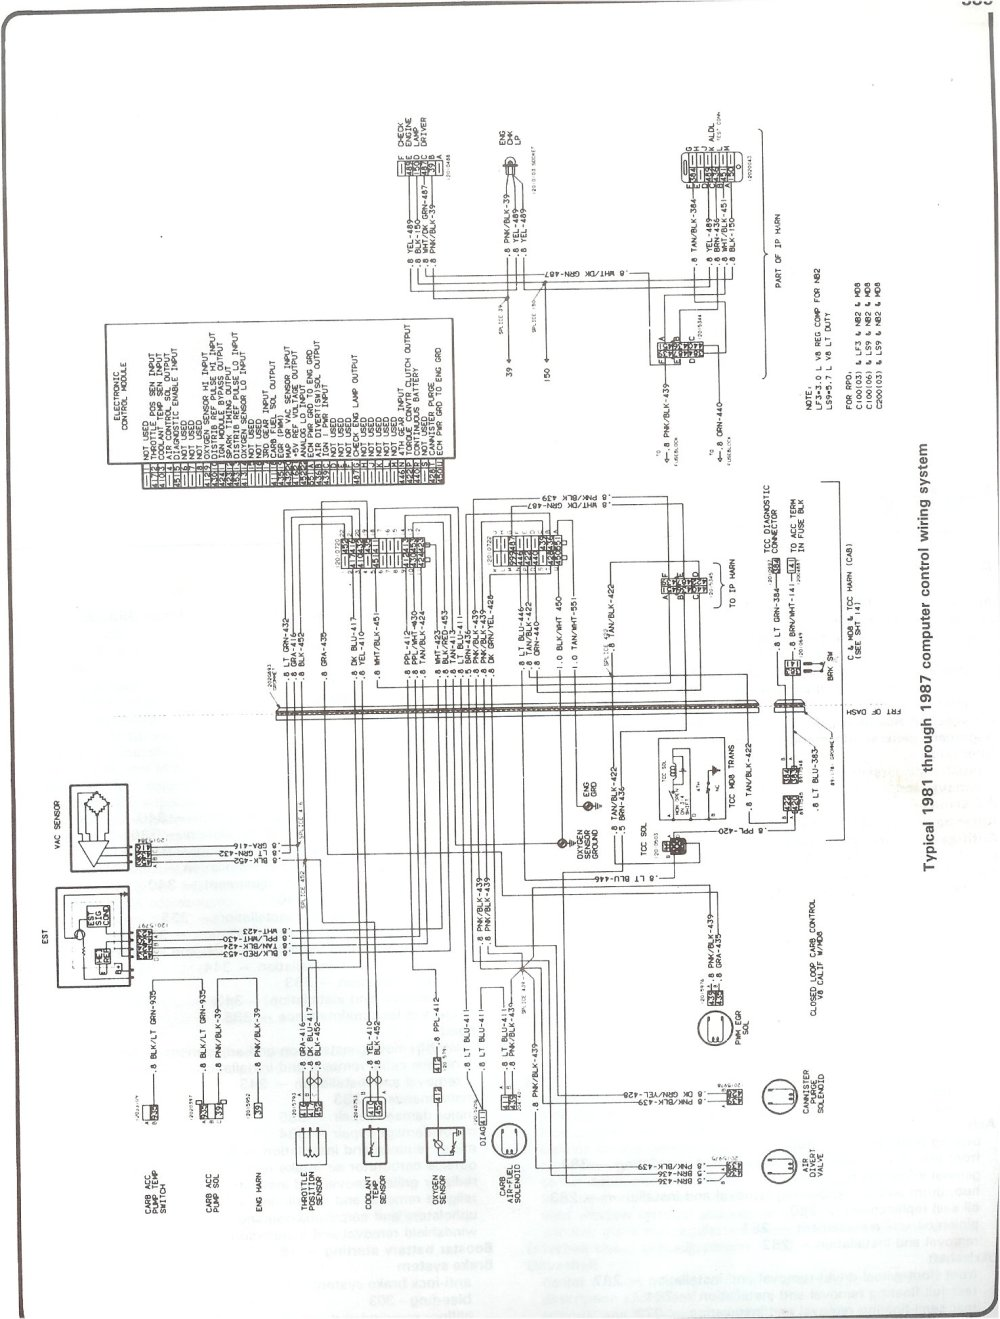 medium resolution of complete 73 87 wiring diagrams rh forum 73 87chevytrucks com 87 chevy pickup wiring diagram 87